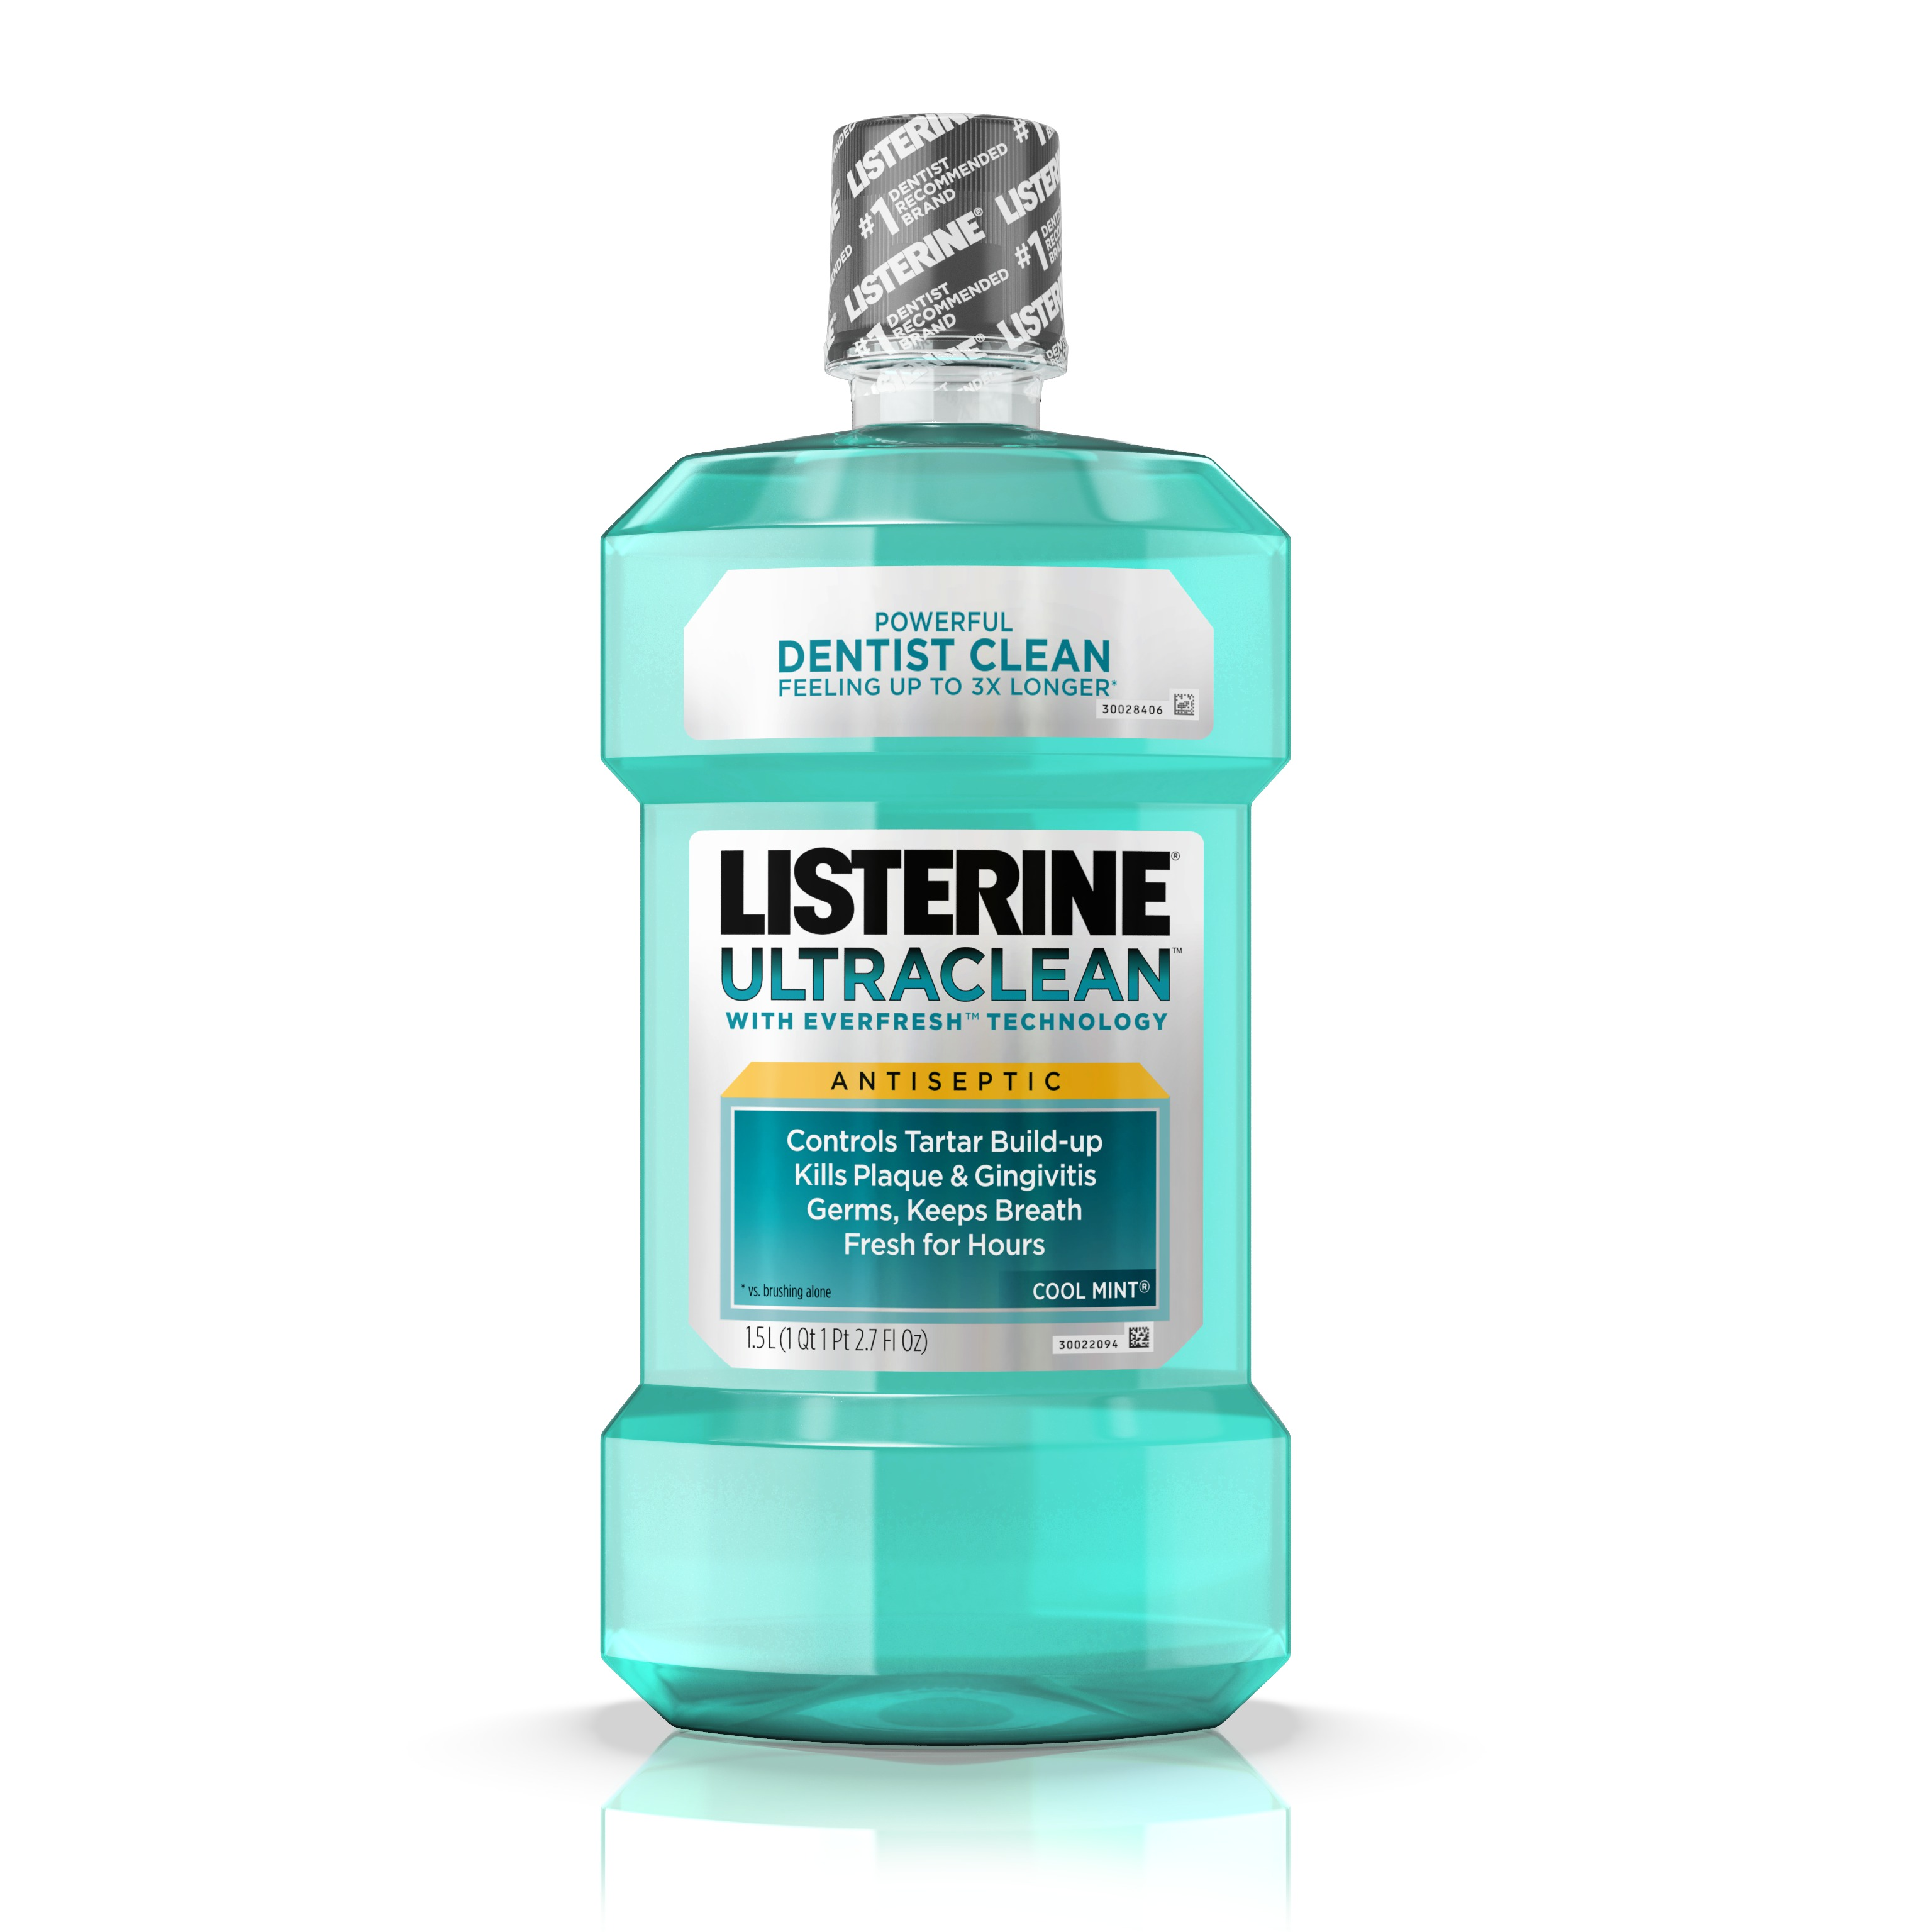 Listerine Ultraclean Oral Care Antiseptic Mouthwash, Cool Mint, 1.5l